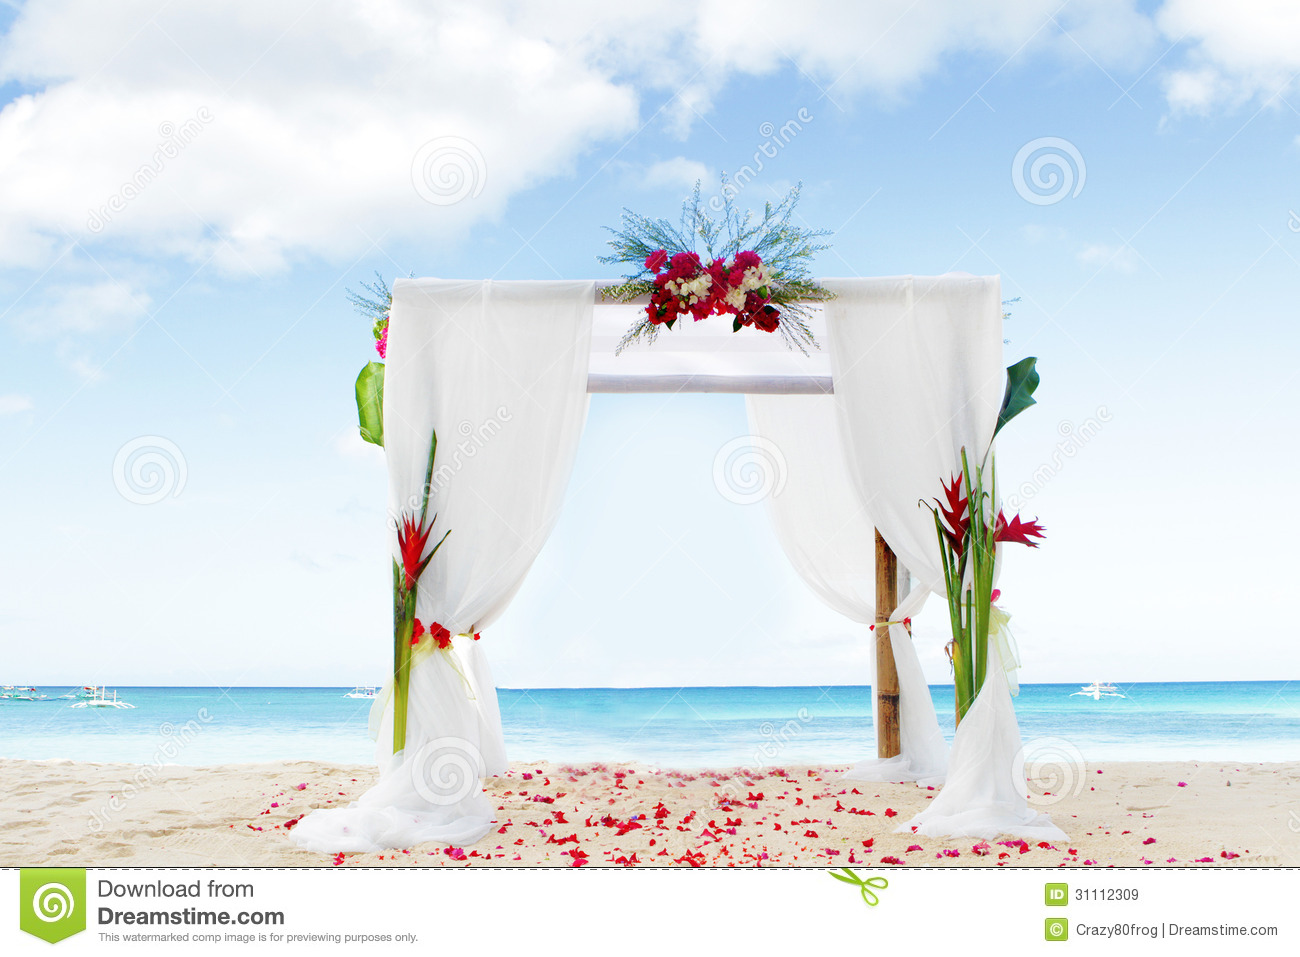 vo te de mariage sur la plage images libres de droits image 31112309. Black Bedroom Furniture Sets. Home Design Ideas